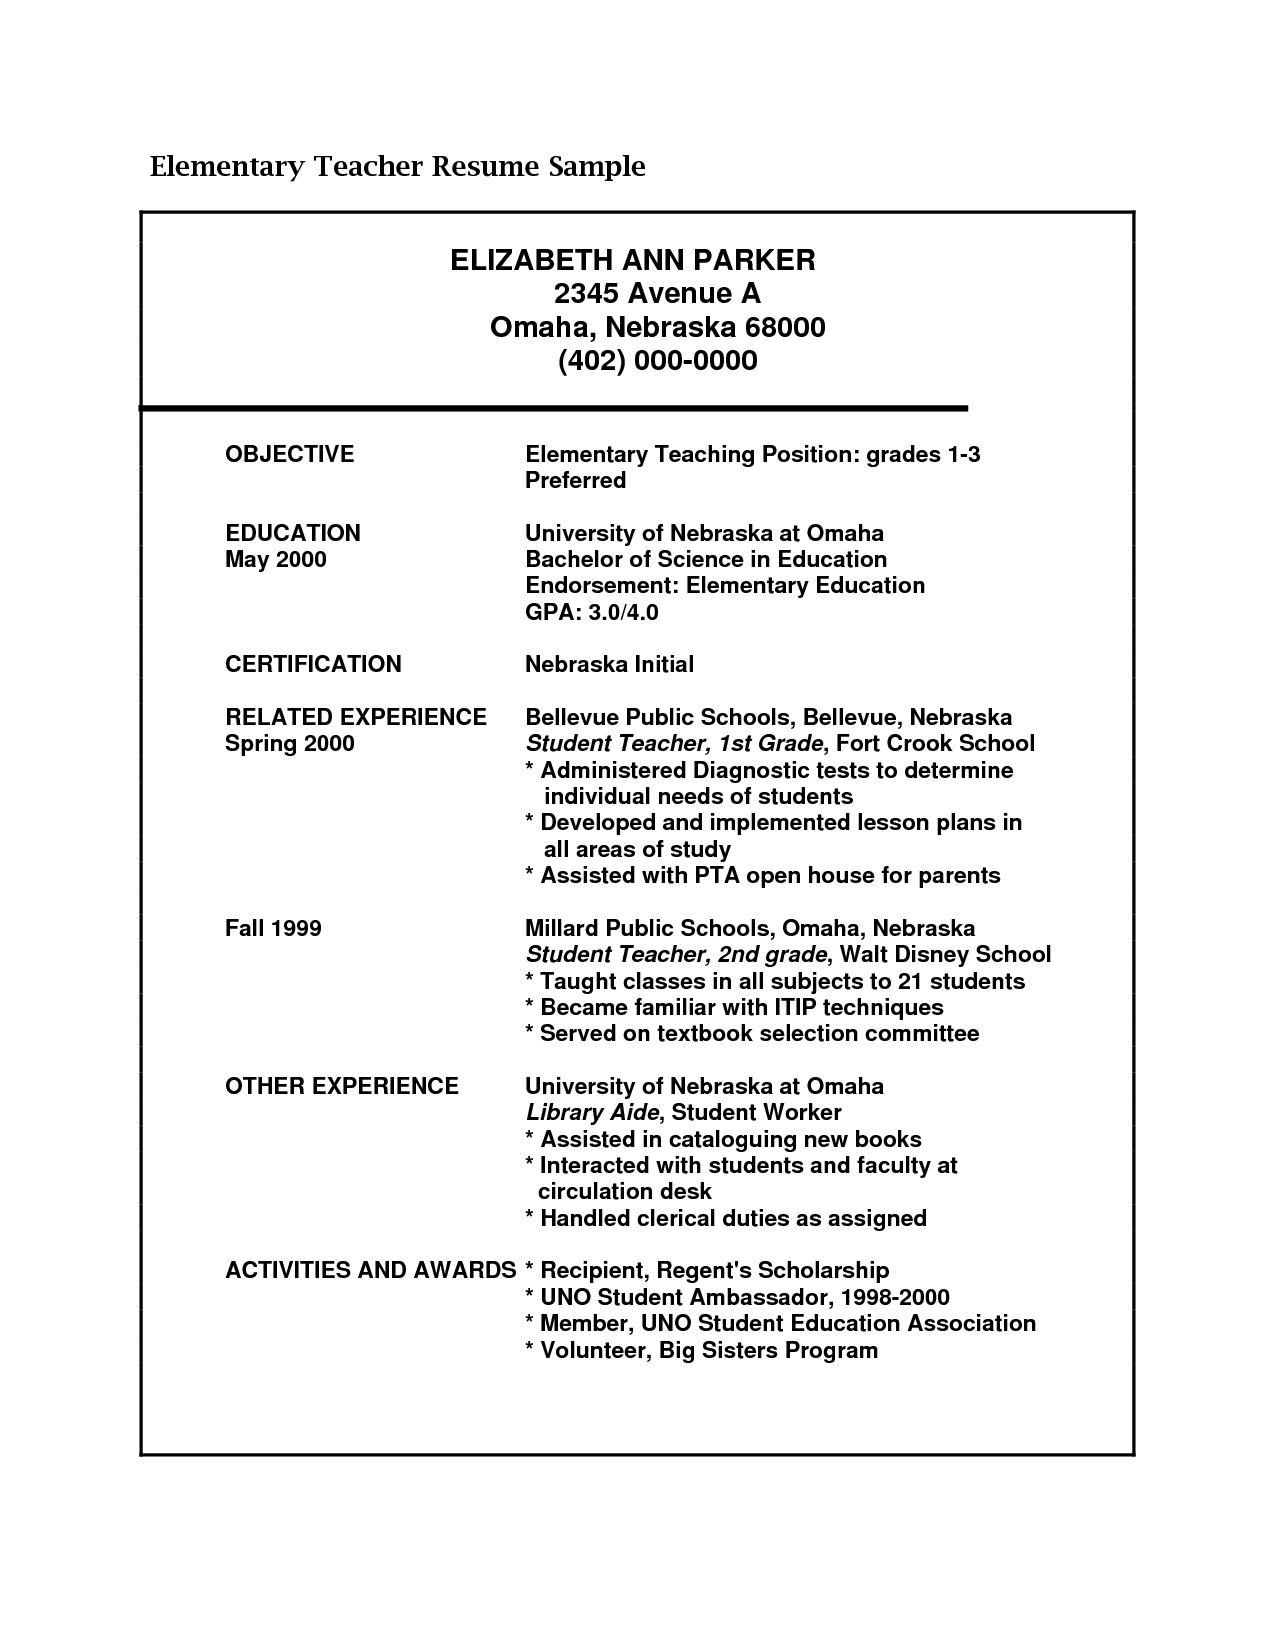 cv for teachers teachers resumes com au teachers cv for teachers teachers resumes com au